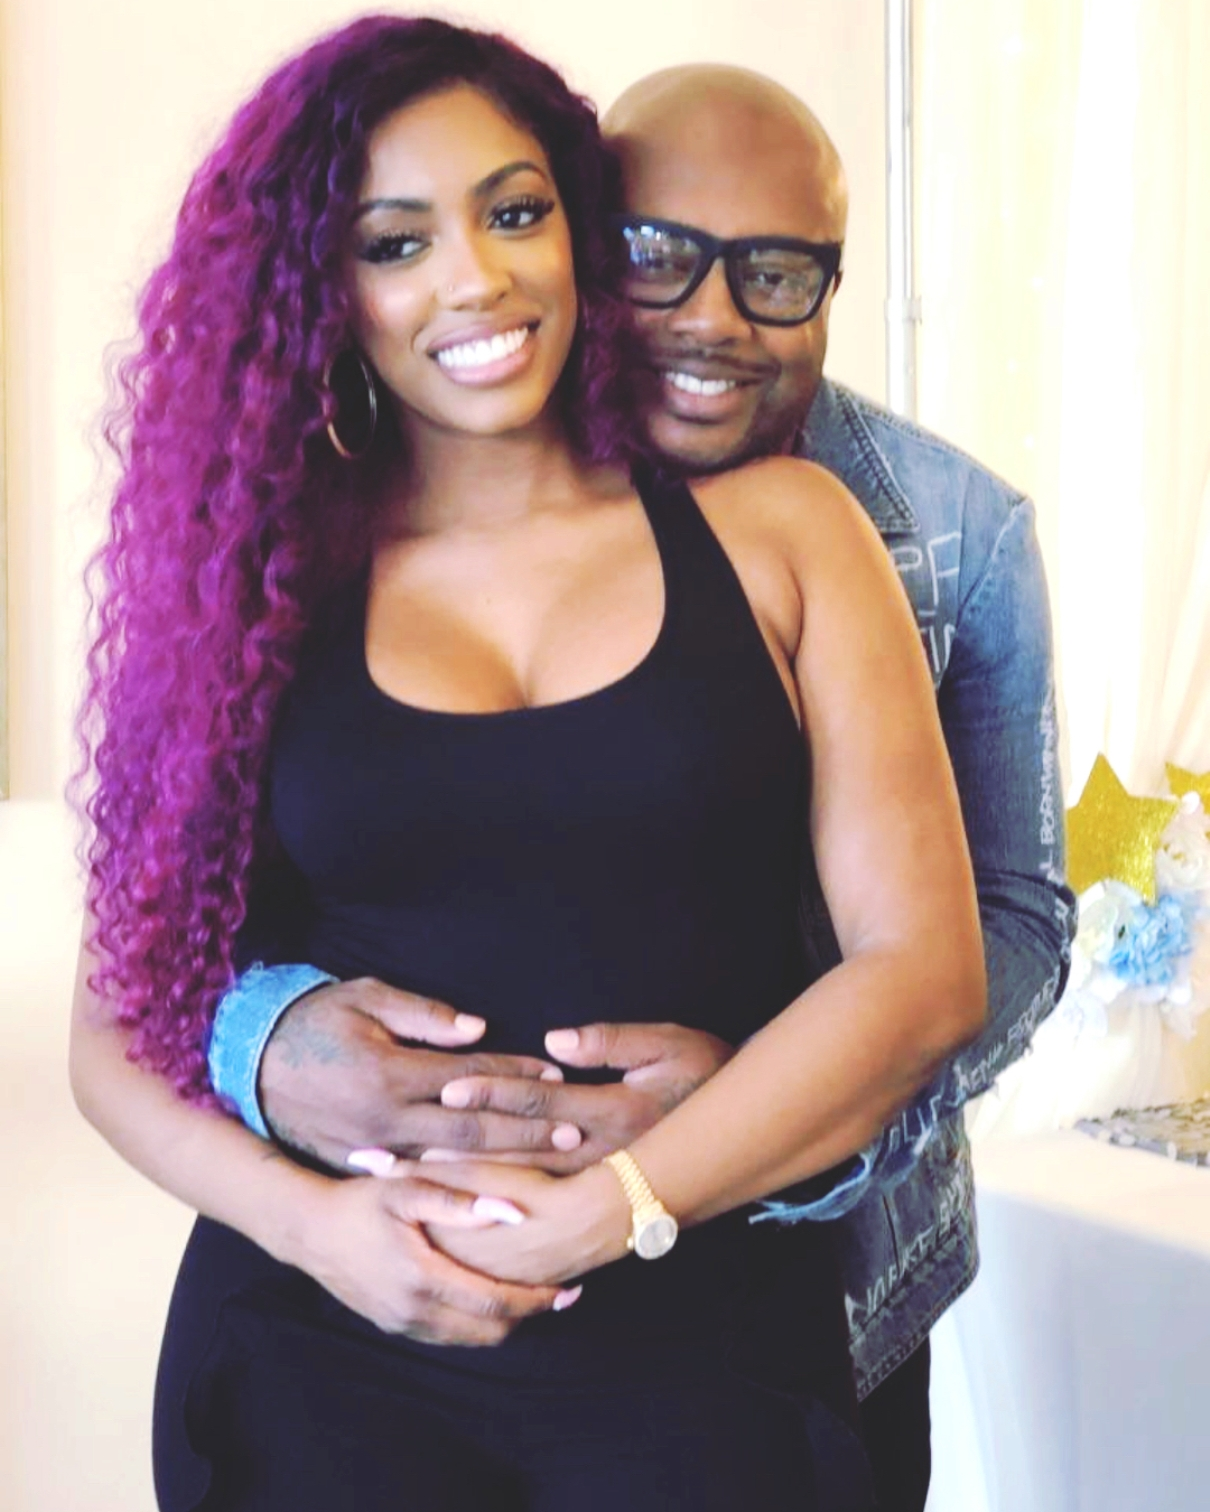 RHOA's Porsha Williams Is Pregnant